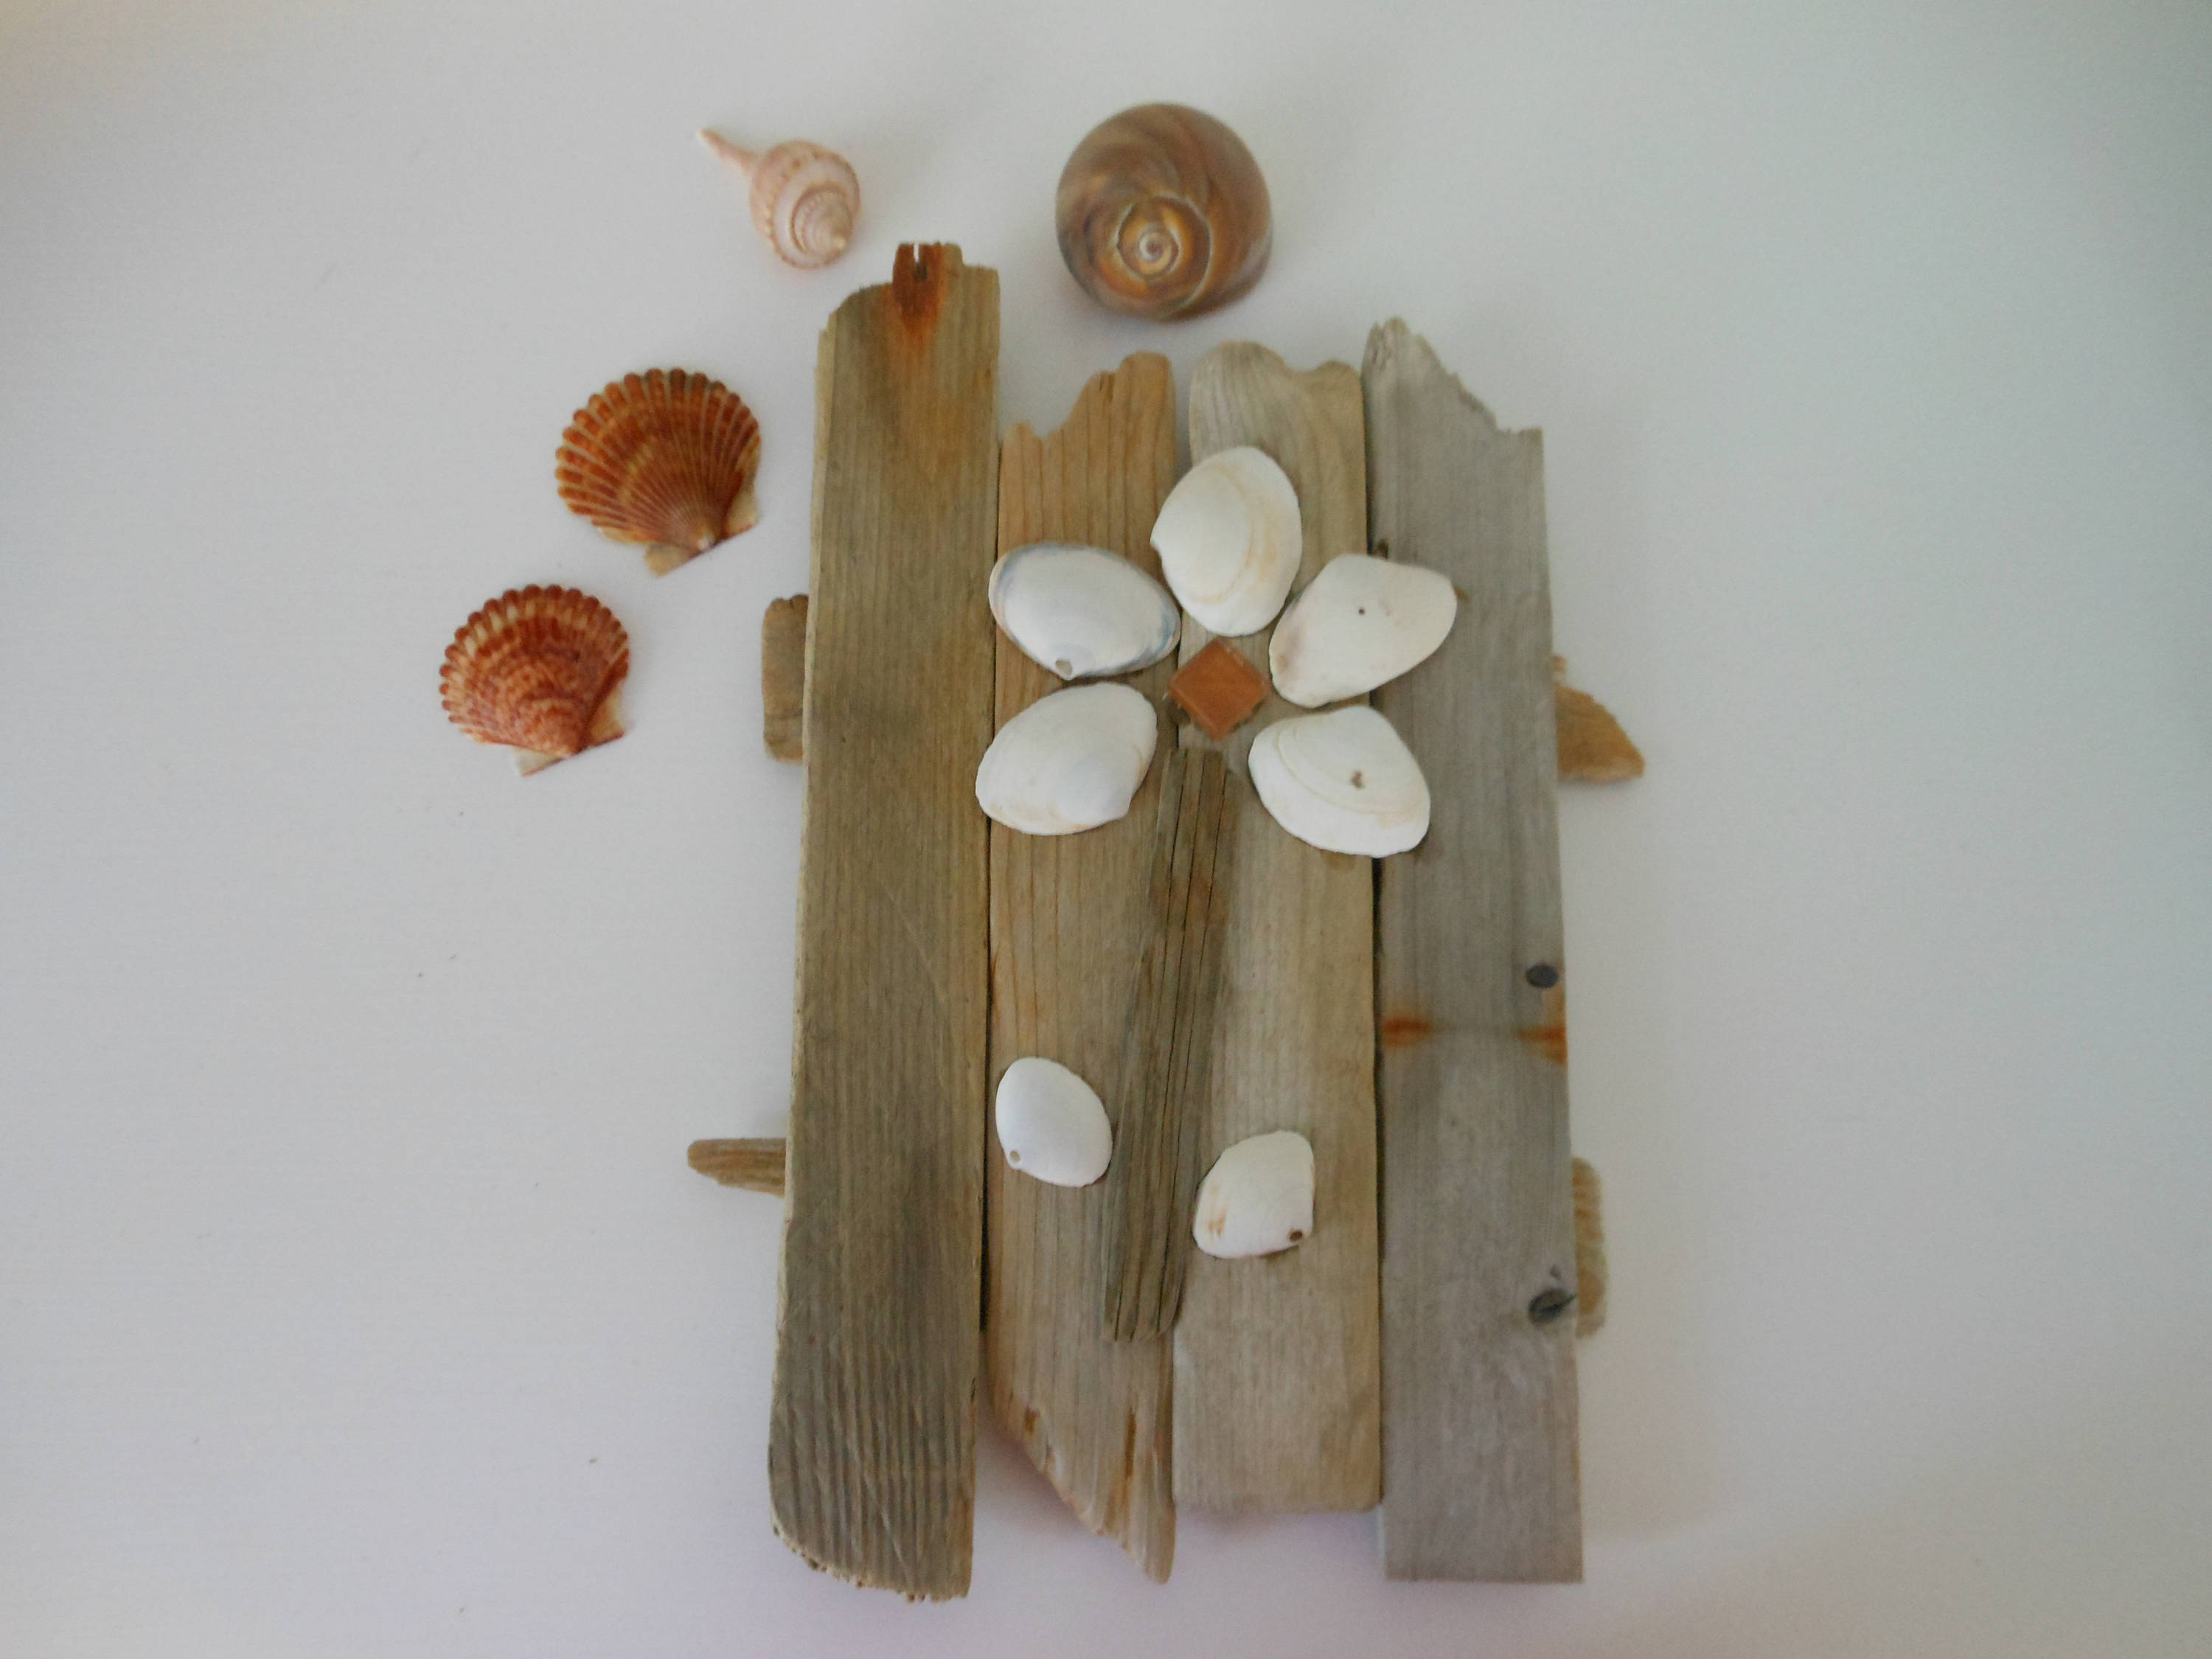 Etsy Throughout Latest Tree Shell Leaves Sculpture Wall Decor (Gallery 20 of 20)